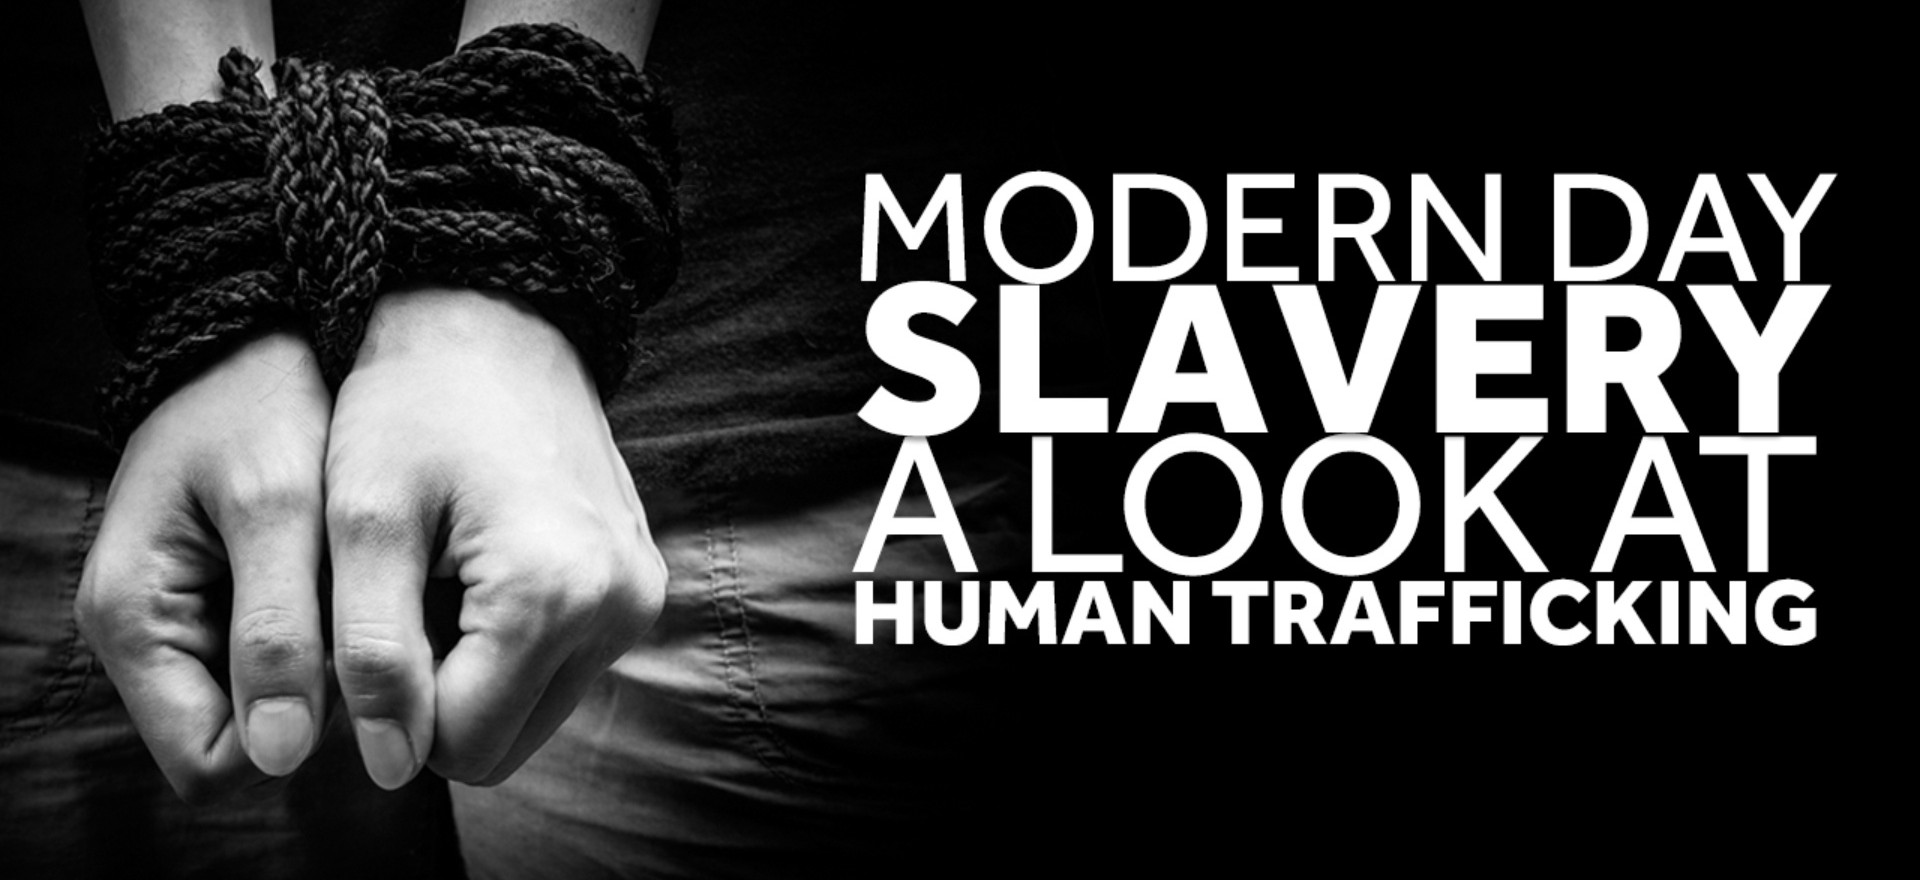 32964532-modern-day-slavery-a-look-at-hu